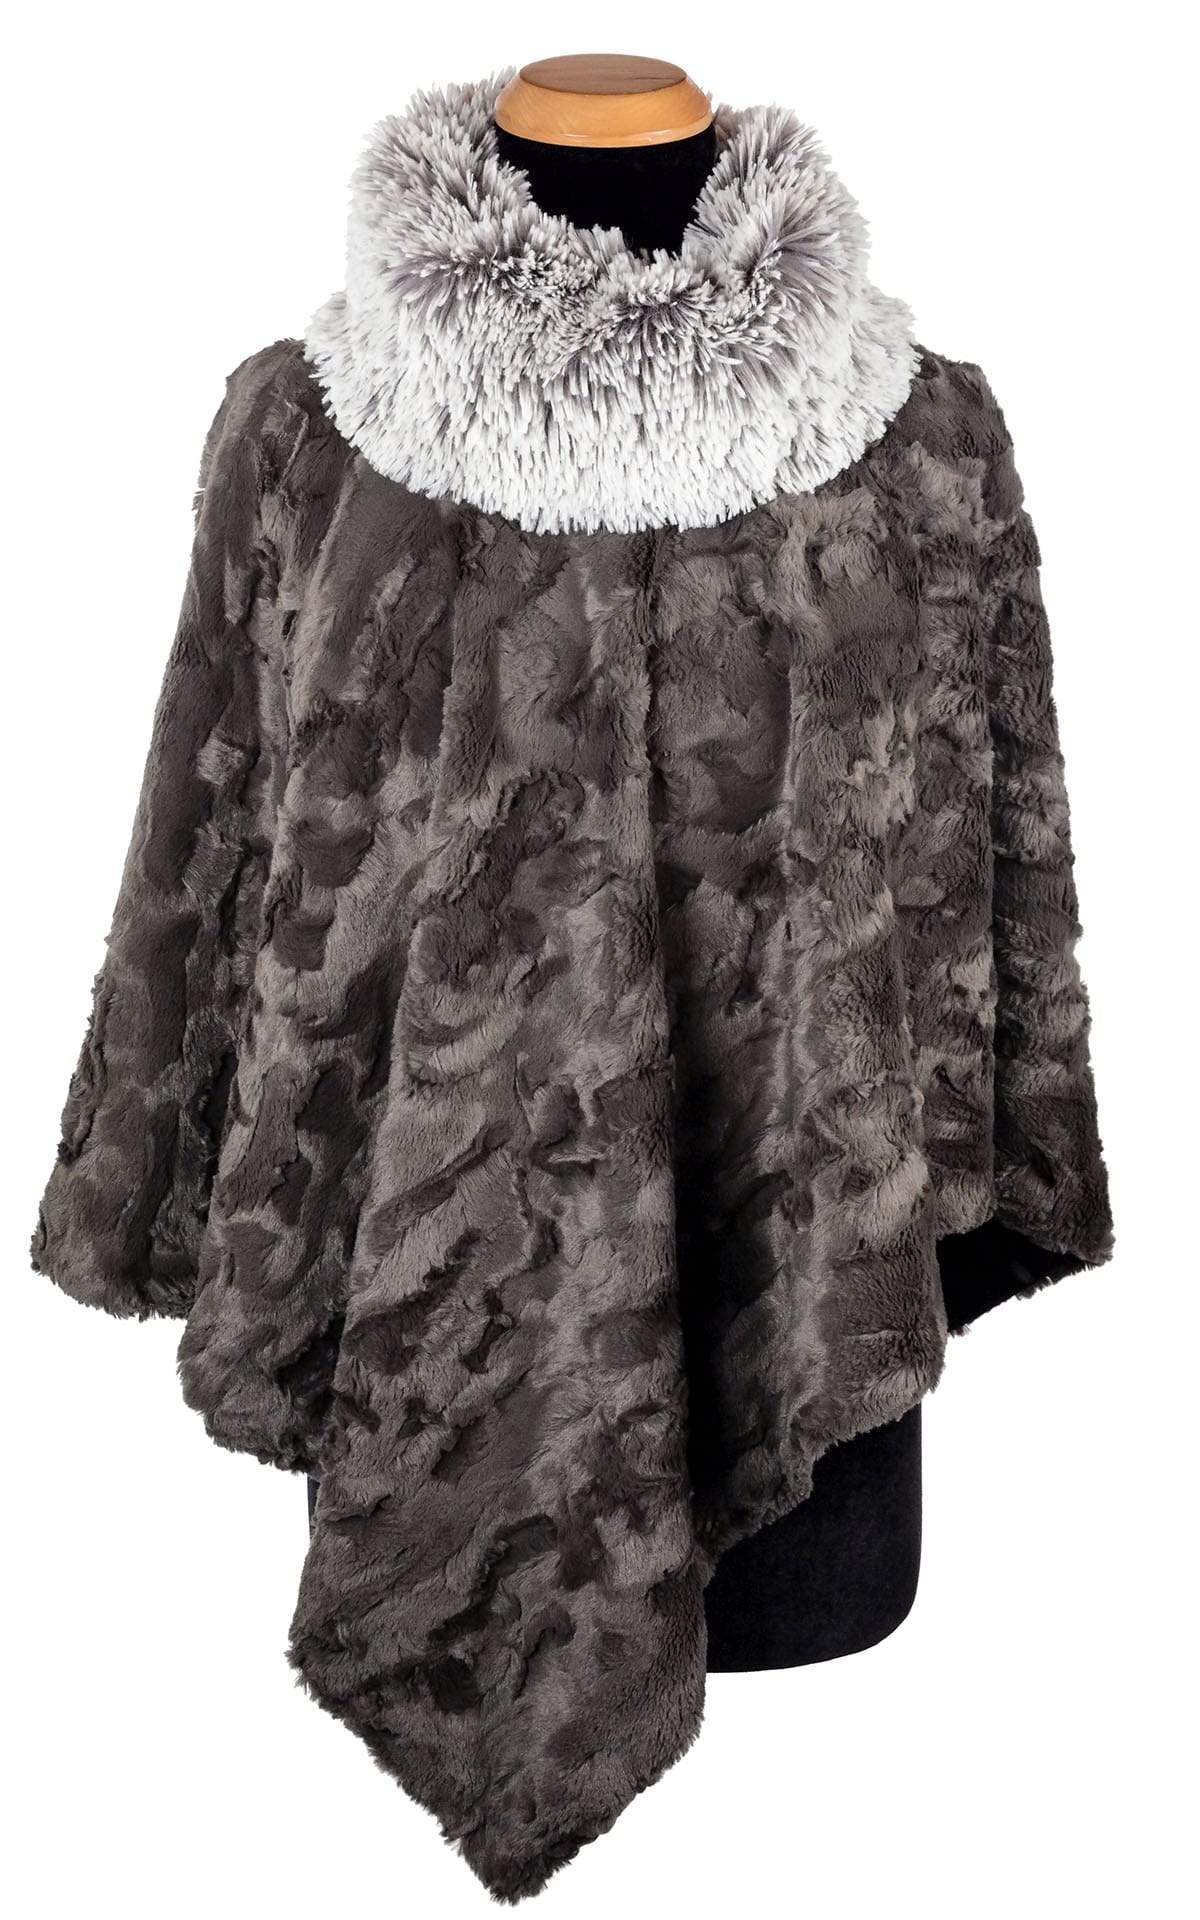 Poncho - Cuddly Faux Fur in Gray with Fox Collar (Only One with Fox Collar Left for Season!)